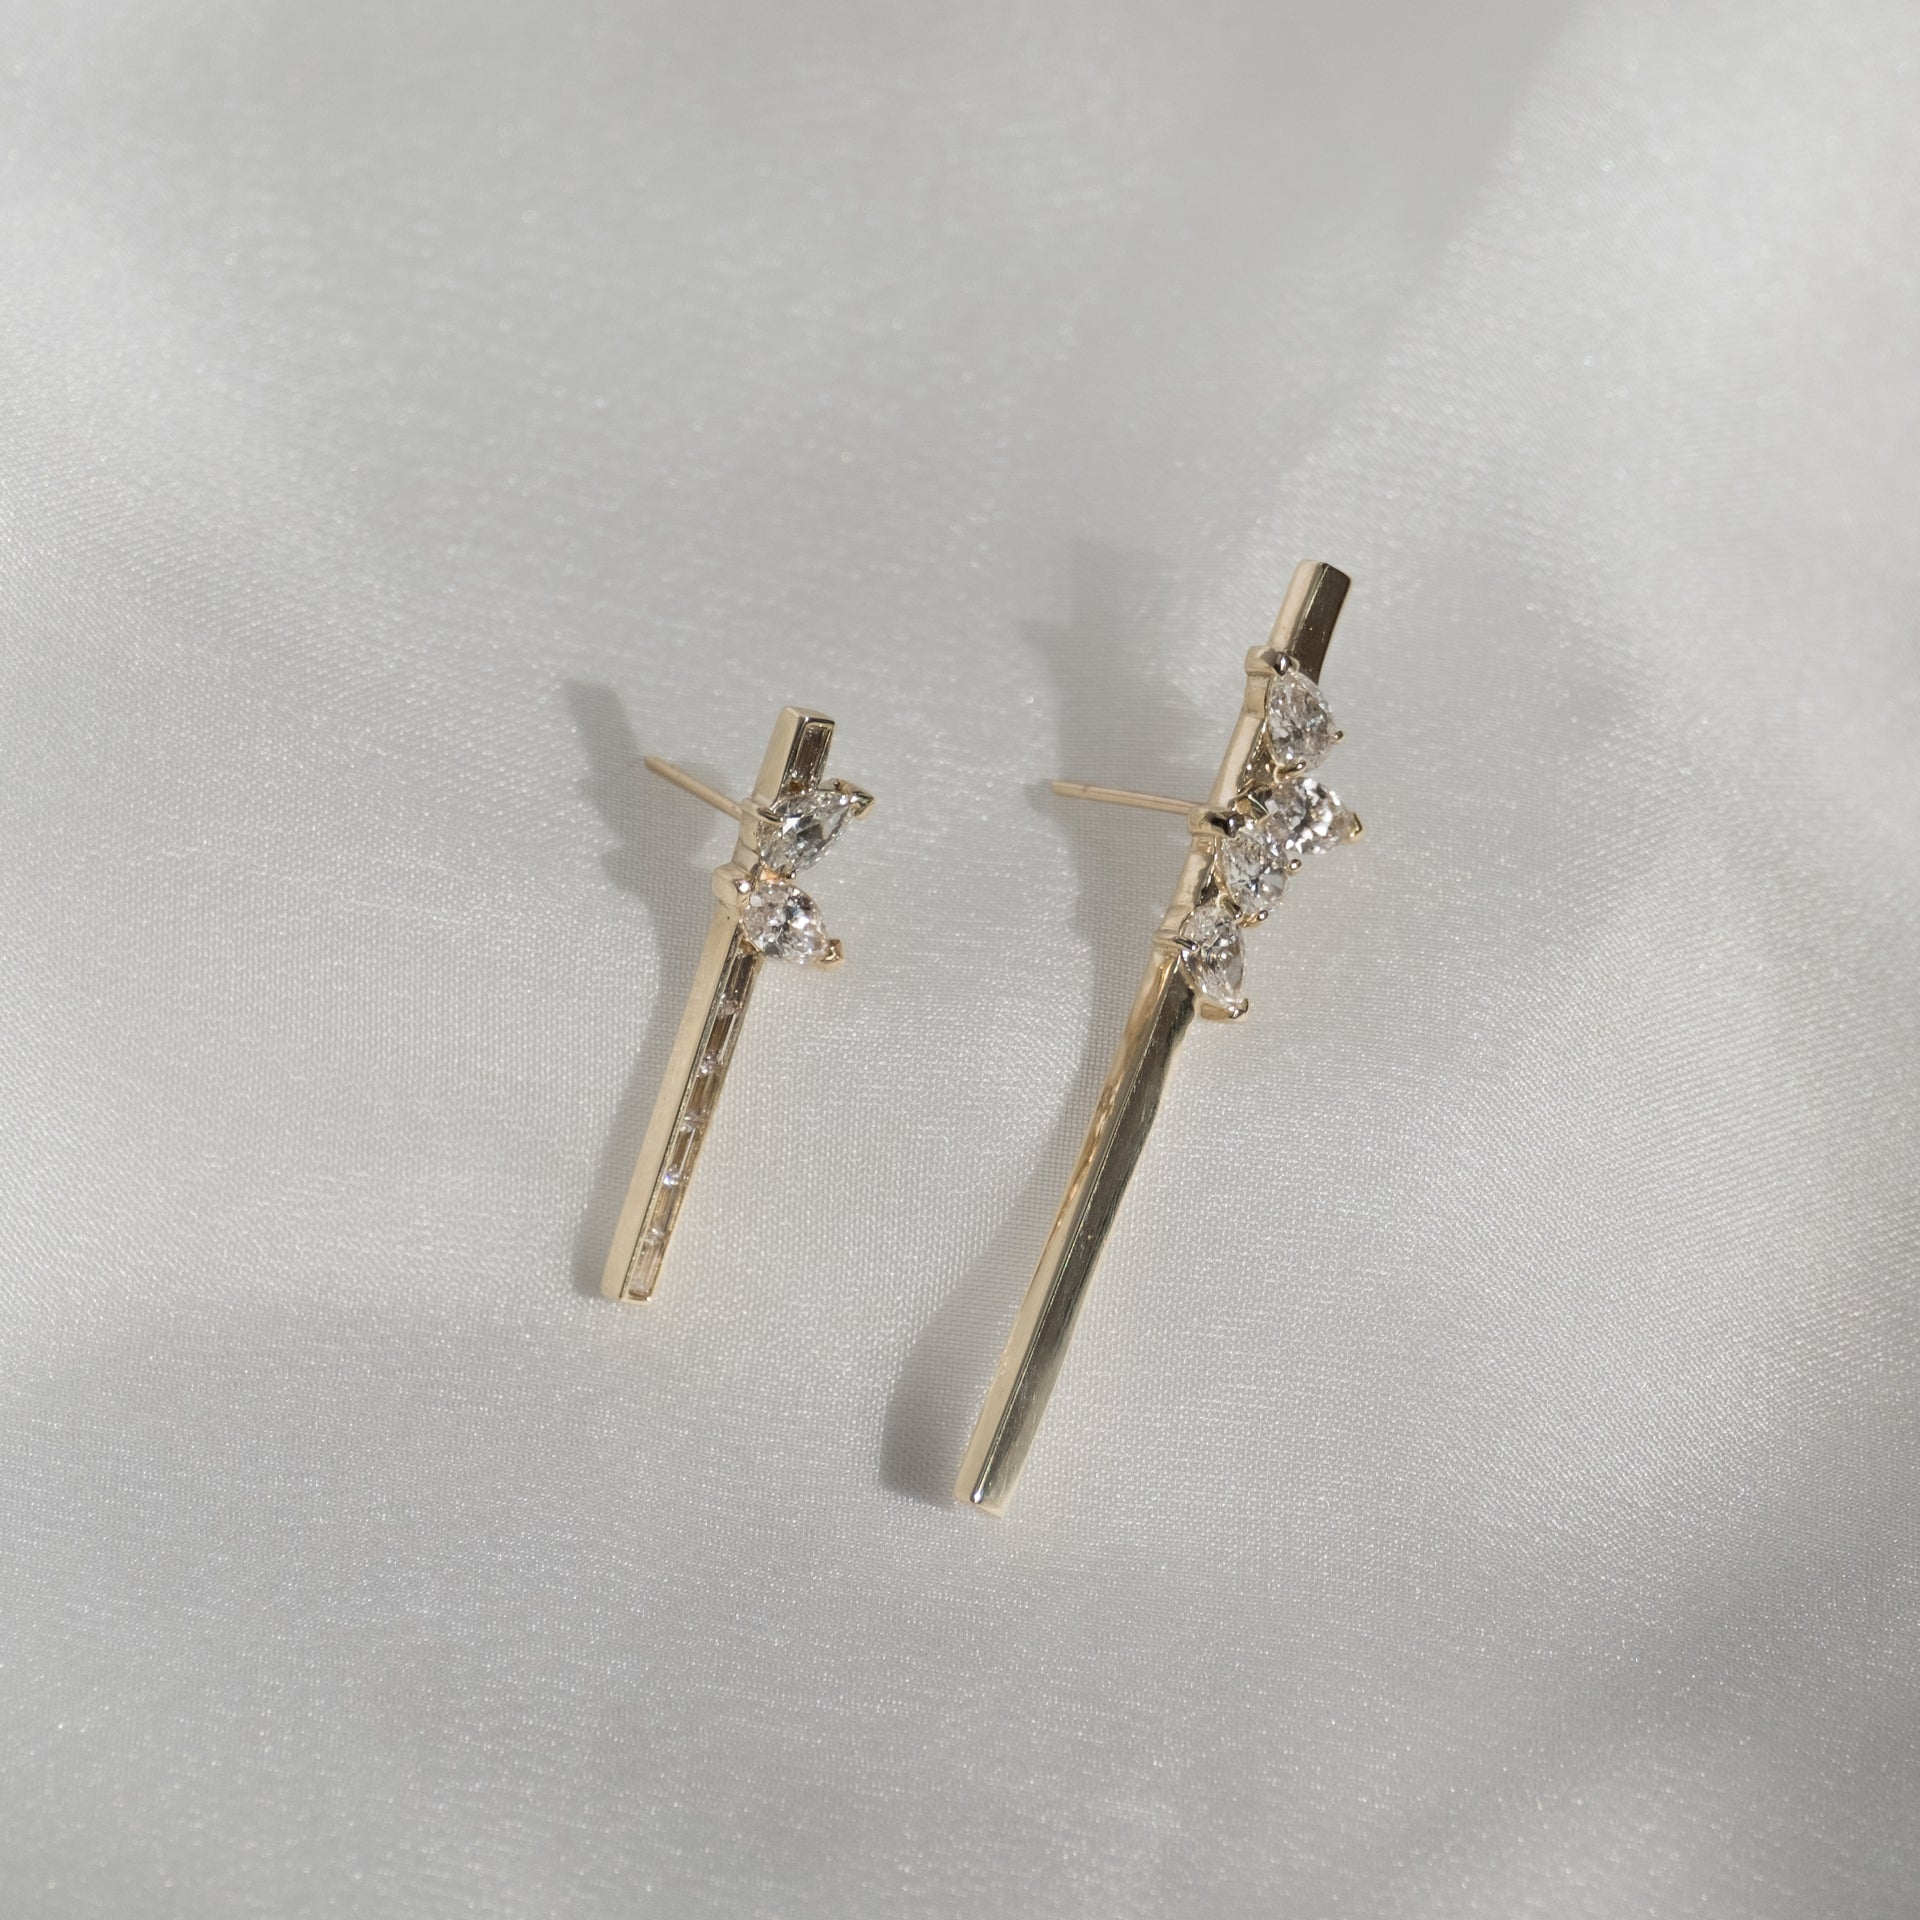 Grace Lee x Diamond Foundry Marquise + Pear Baguette Bar Earring